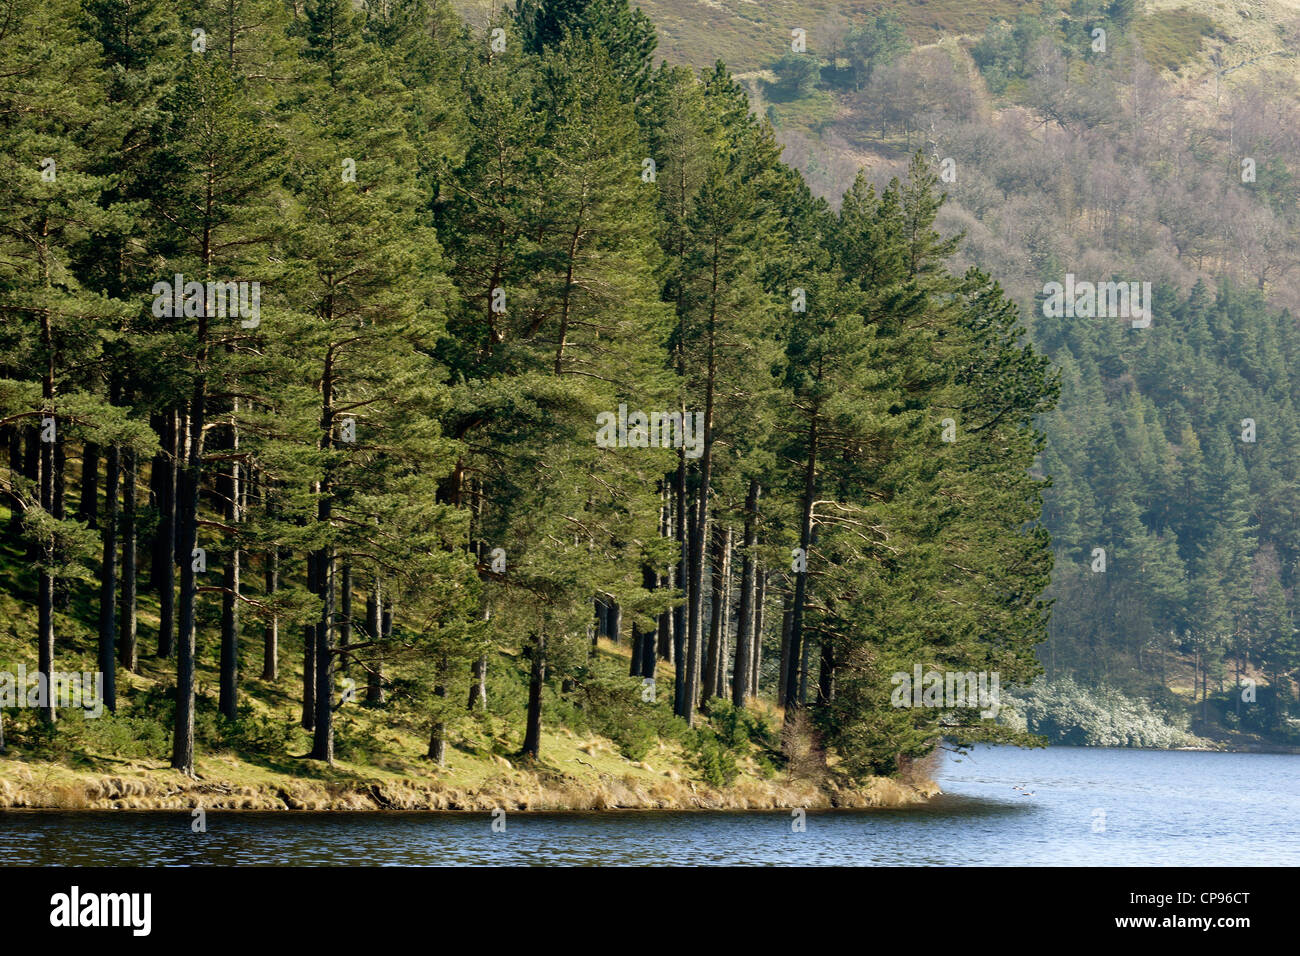 trees next to a lake with hill - Stock Image